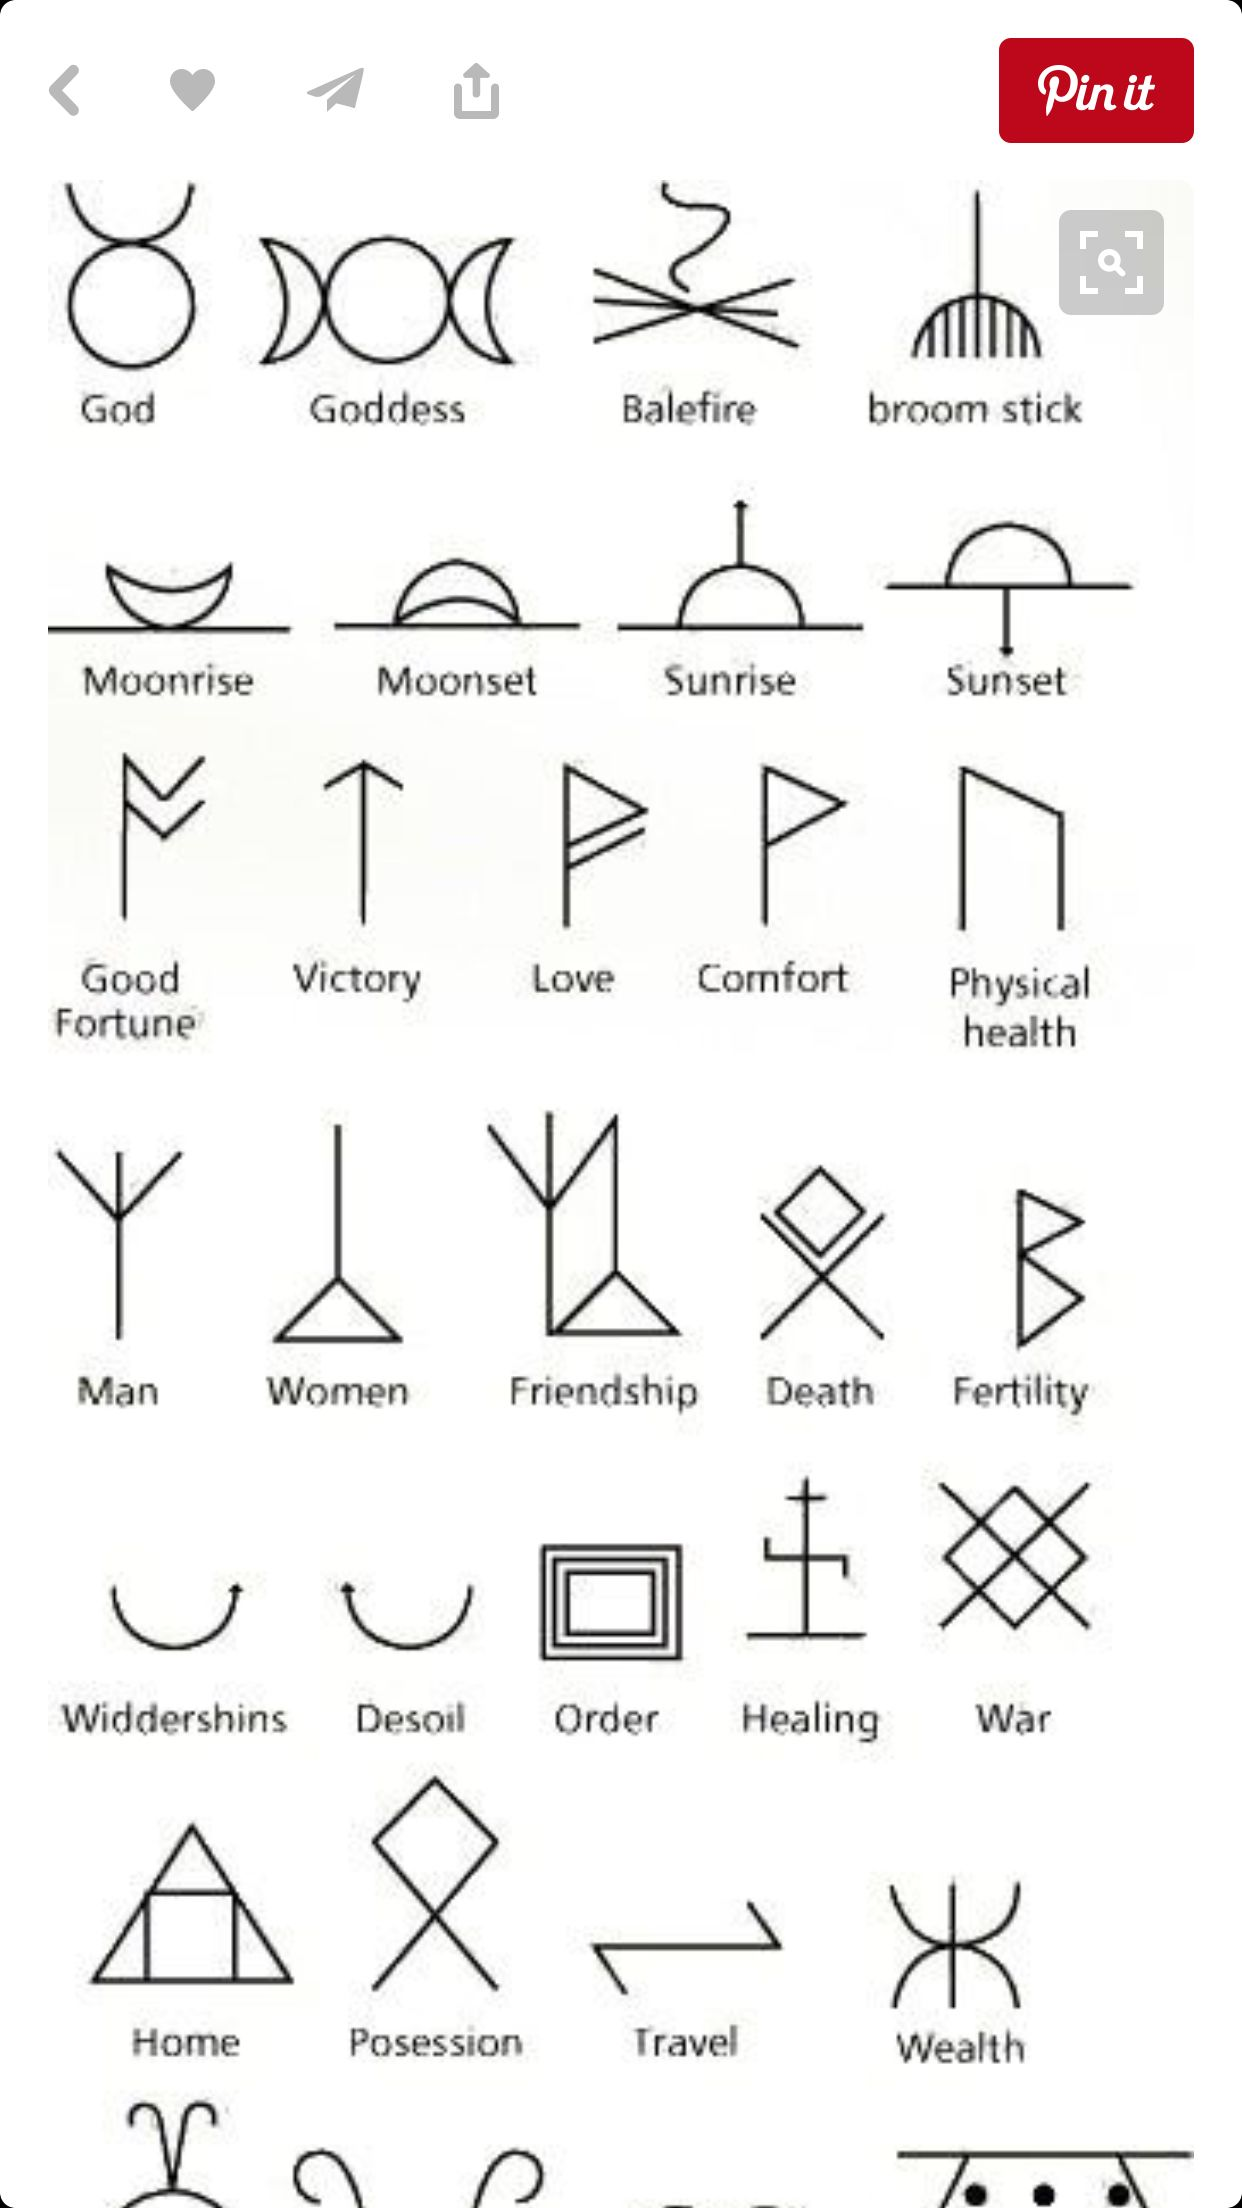 Pin by laura tran on tatoos pinterest tattoo tatoo and tatoos i love that the autumn glyph looks similar to the libra symbol that would be a nice tattoo idea buycottarizona